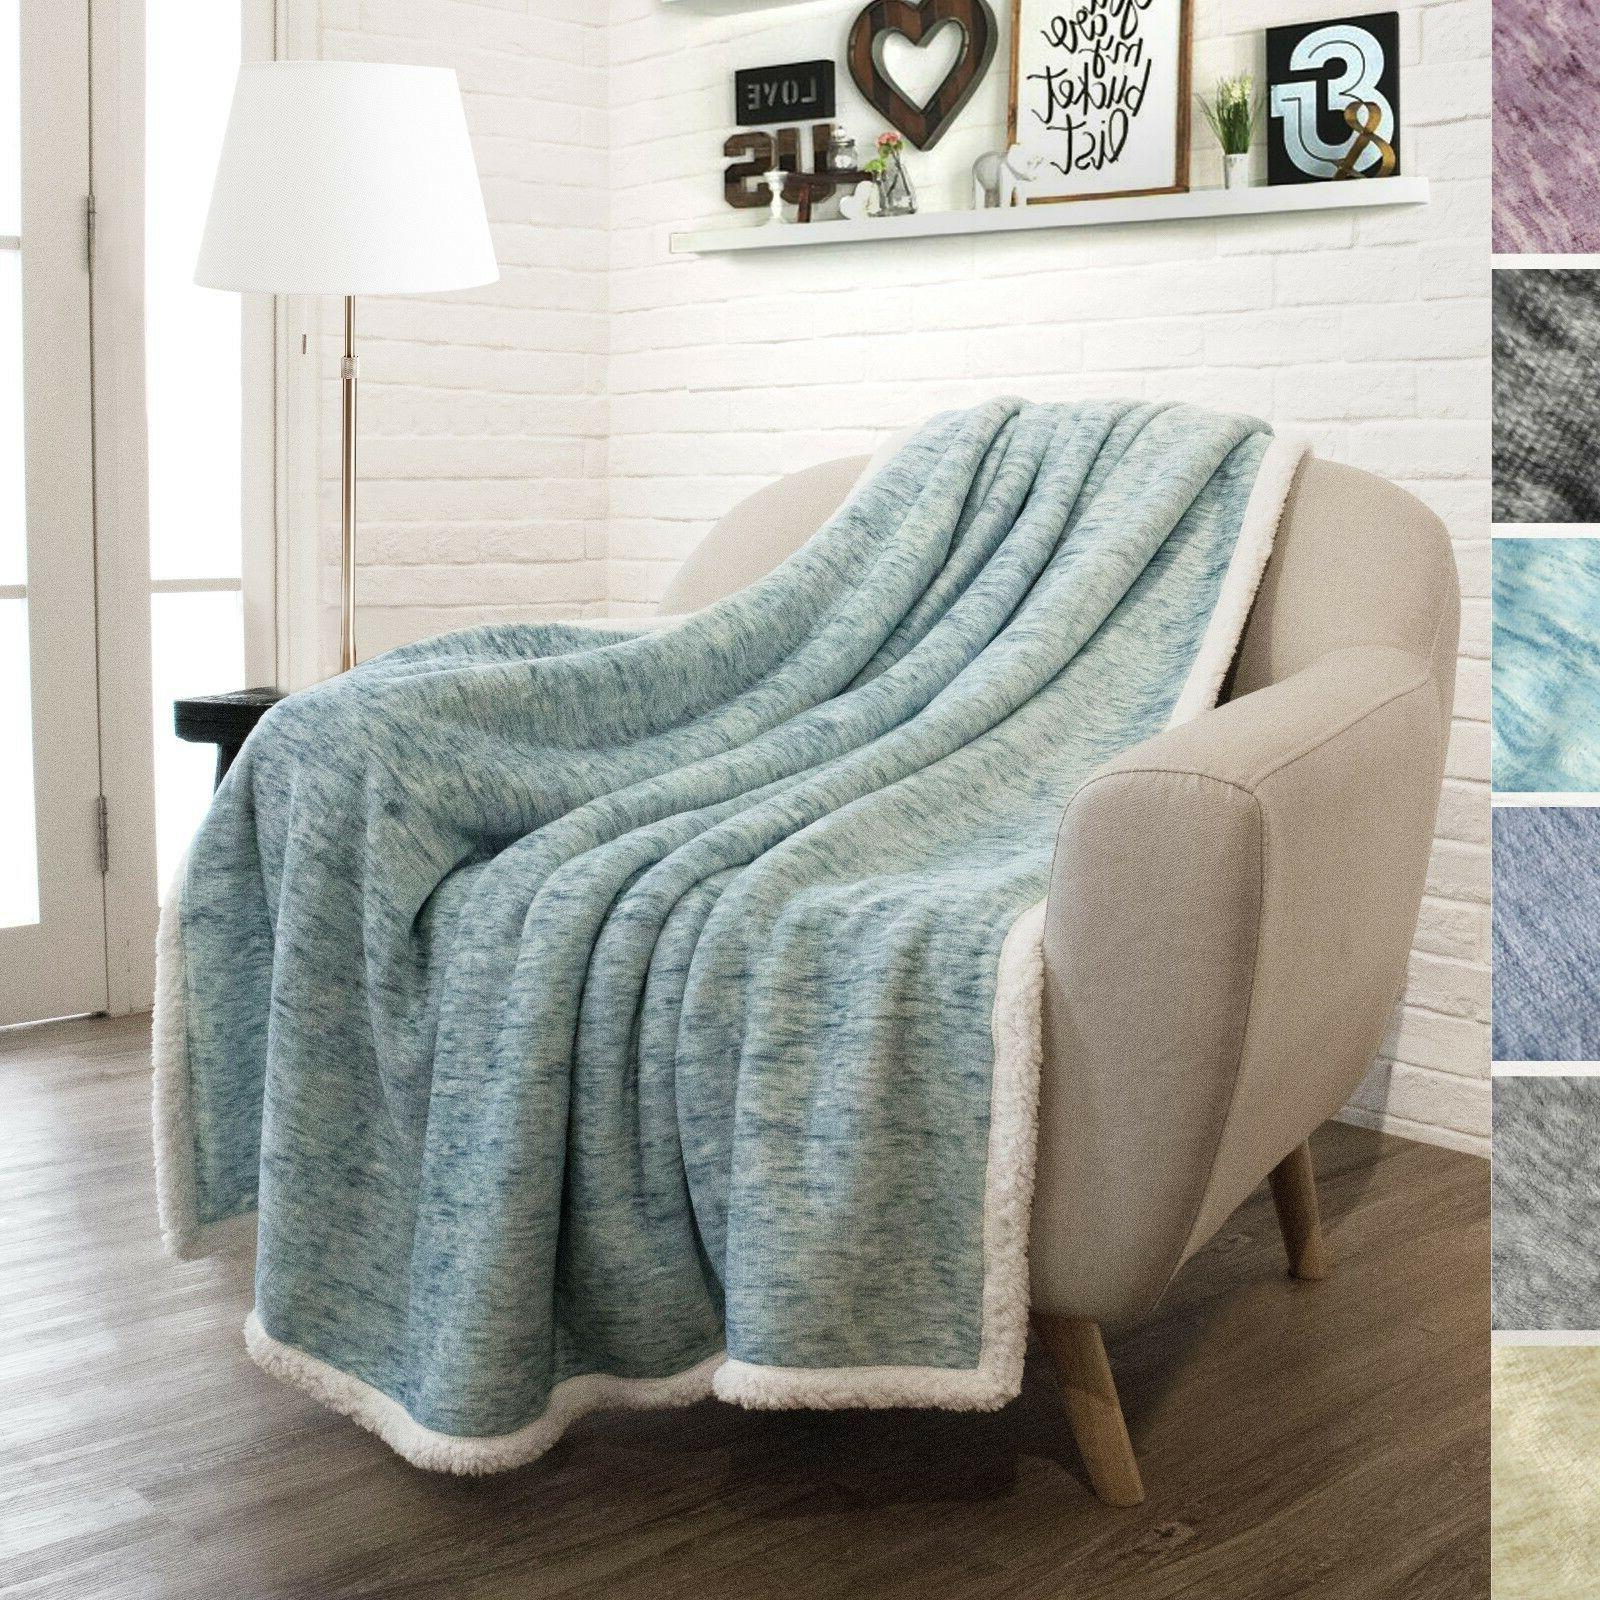 Sherpa Blanket Couch Twin Bed Reversible Soft